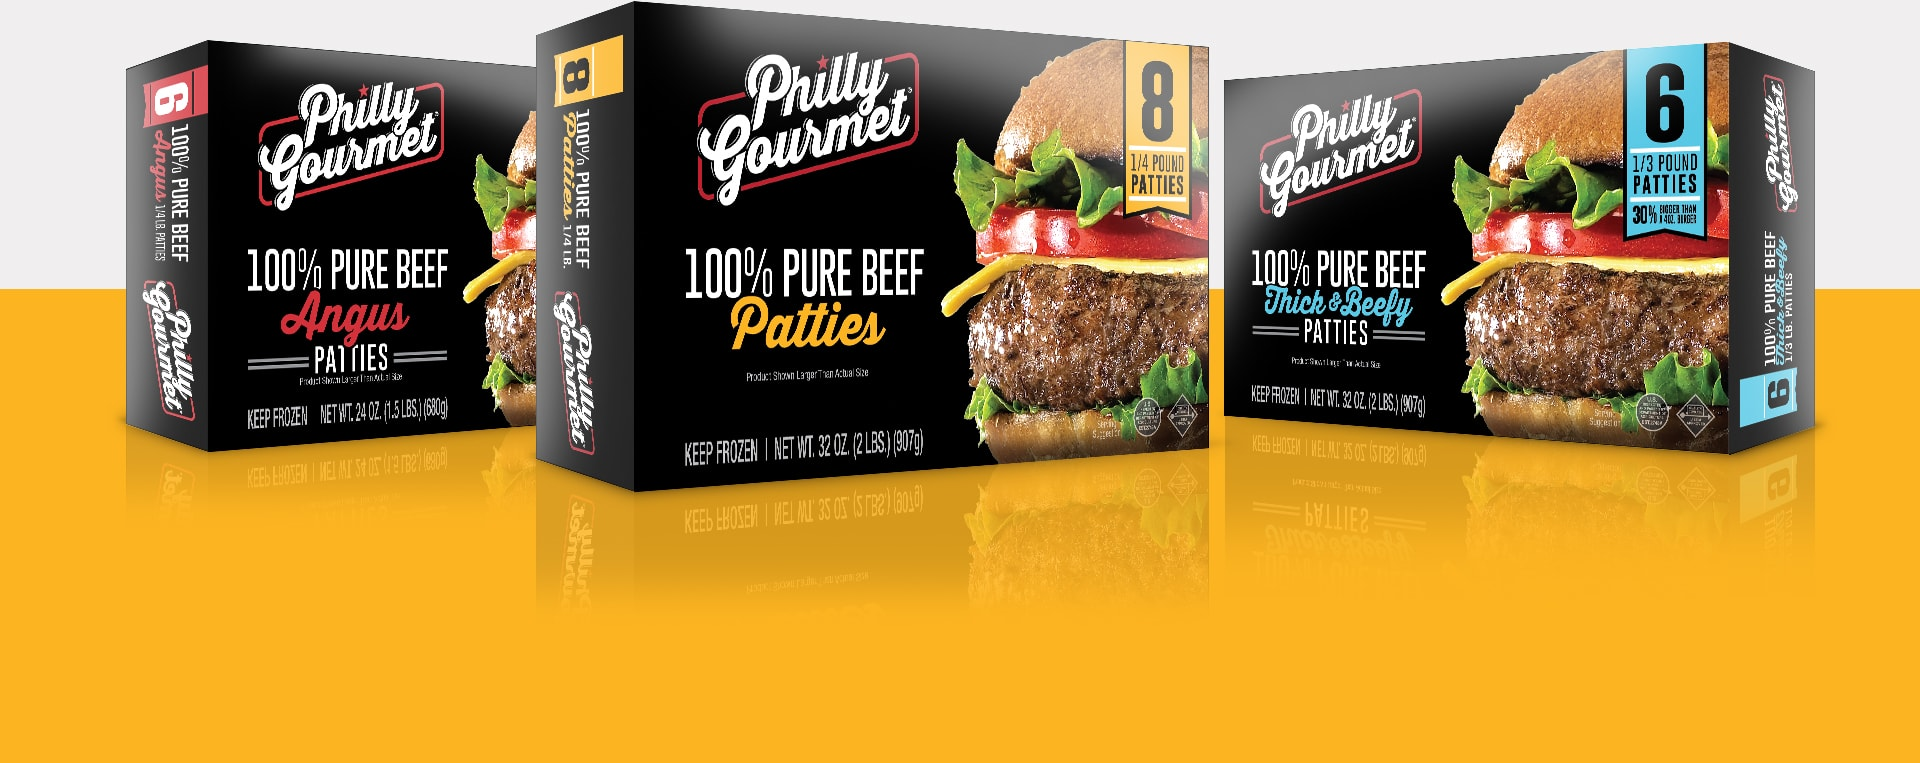 Philly Gourmet Packaging